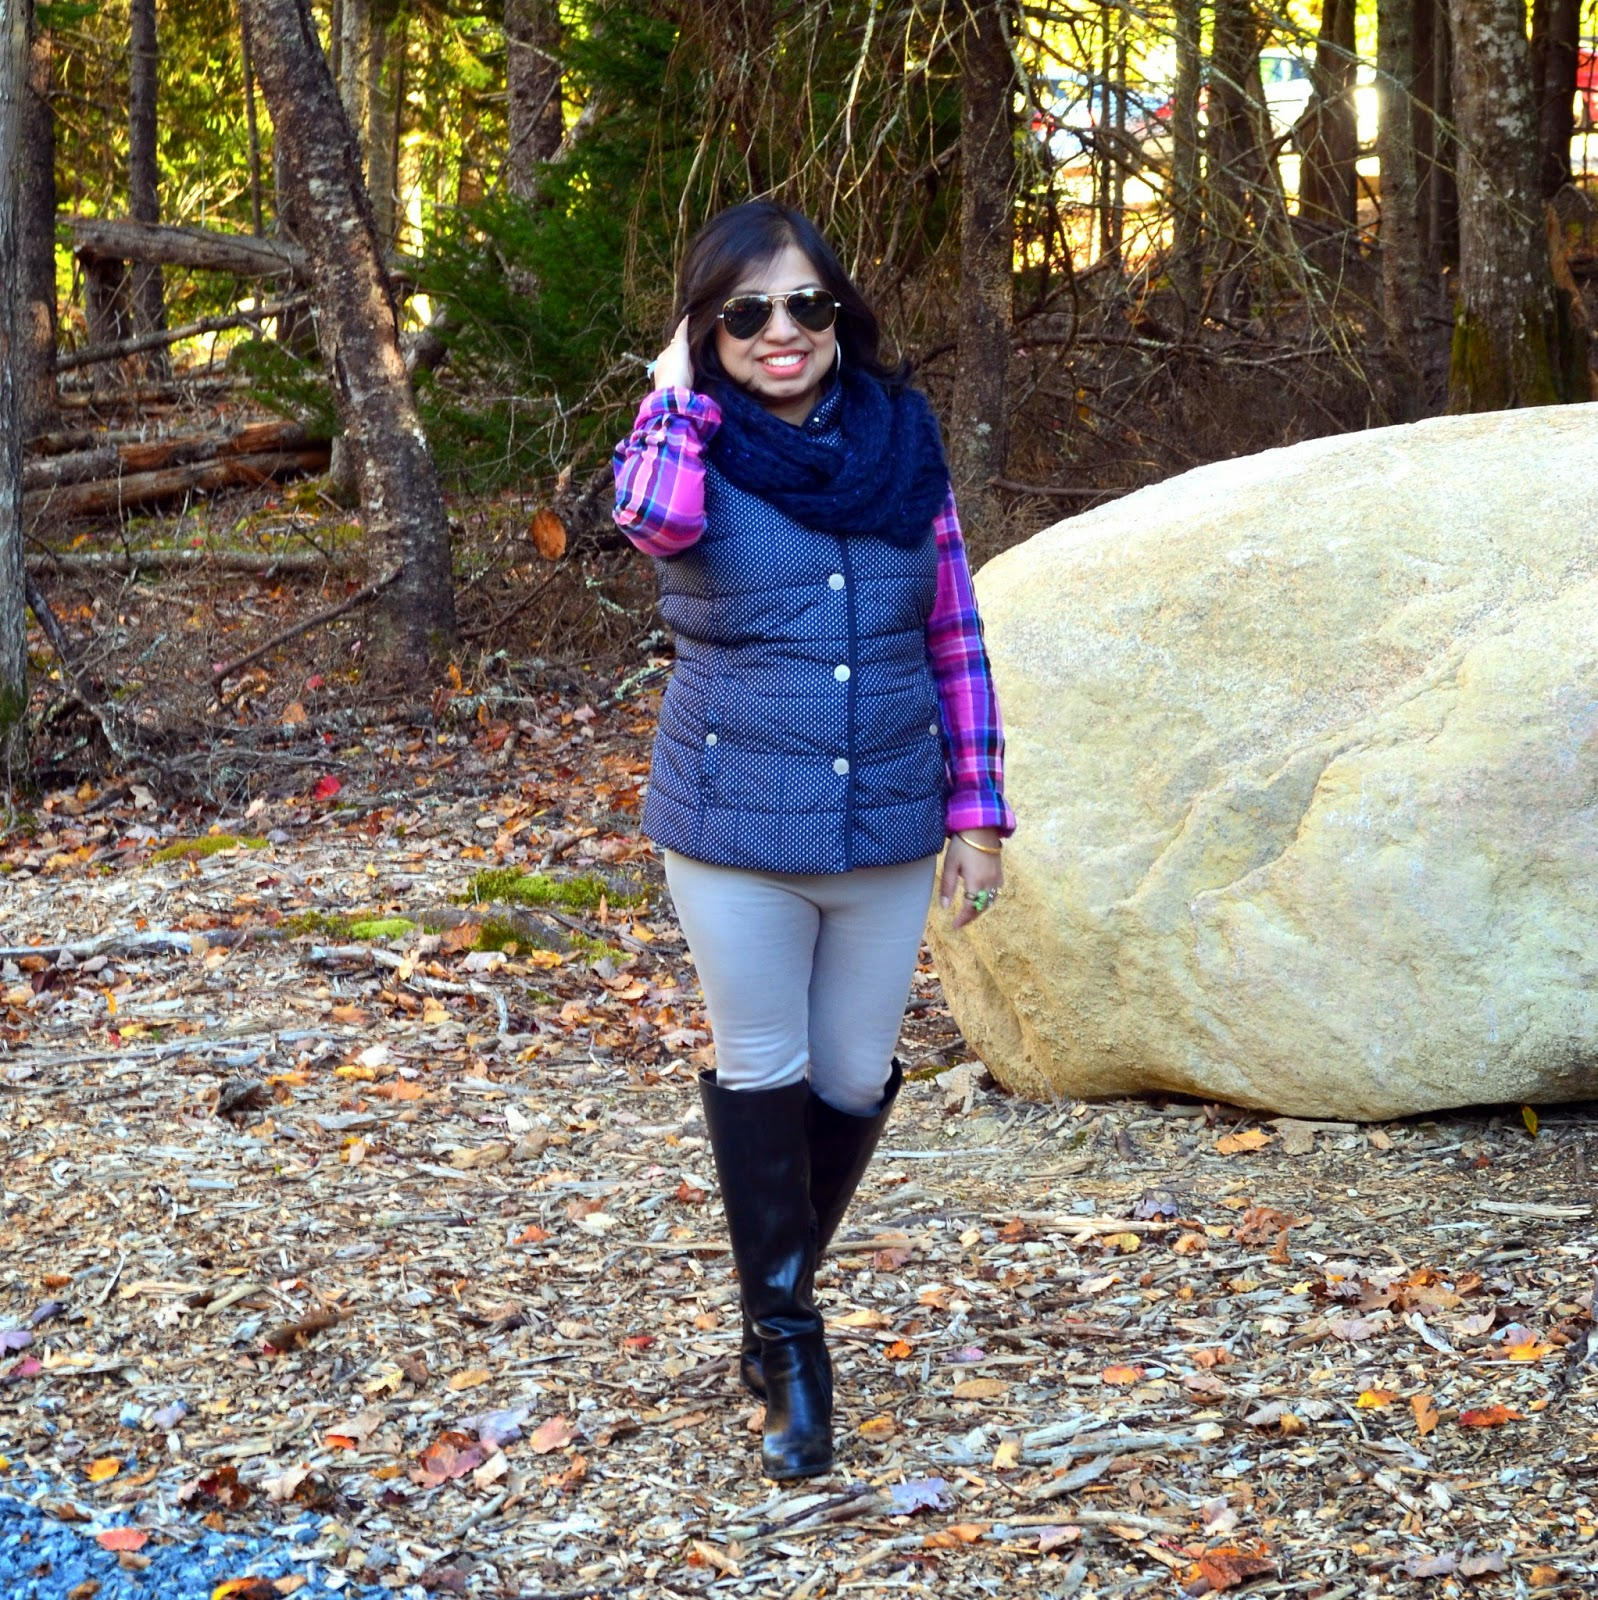 fall fashion, fall outfit, post partum fashion, fall OOTD, outfits in Maine, Kohl's puffer vest, Aeropostale shirt, Polka dot vest, plaid shirt, Maternity leggings, Cozy scarf, Payless long boot, Black long boot, quirky ring